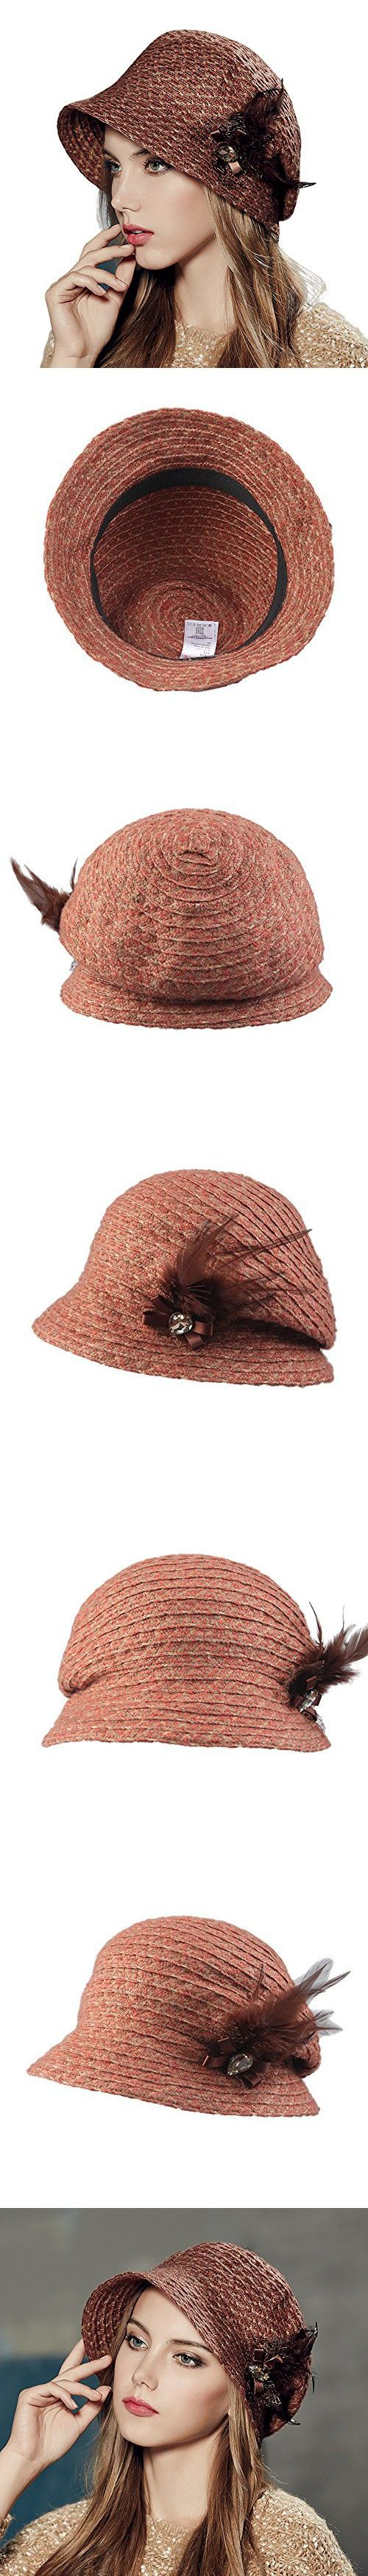 Kenmont Autumn Winter Women Beret Hat Lady Outdoor Acrylic Bucket Cap (Orange)